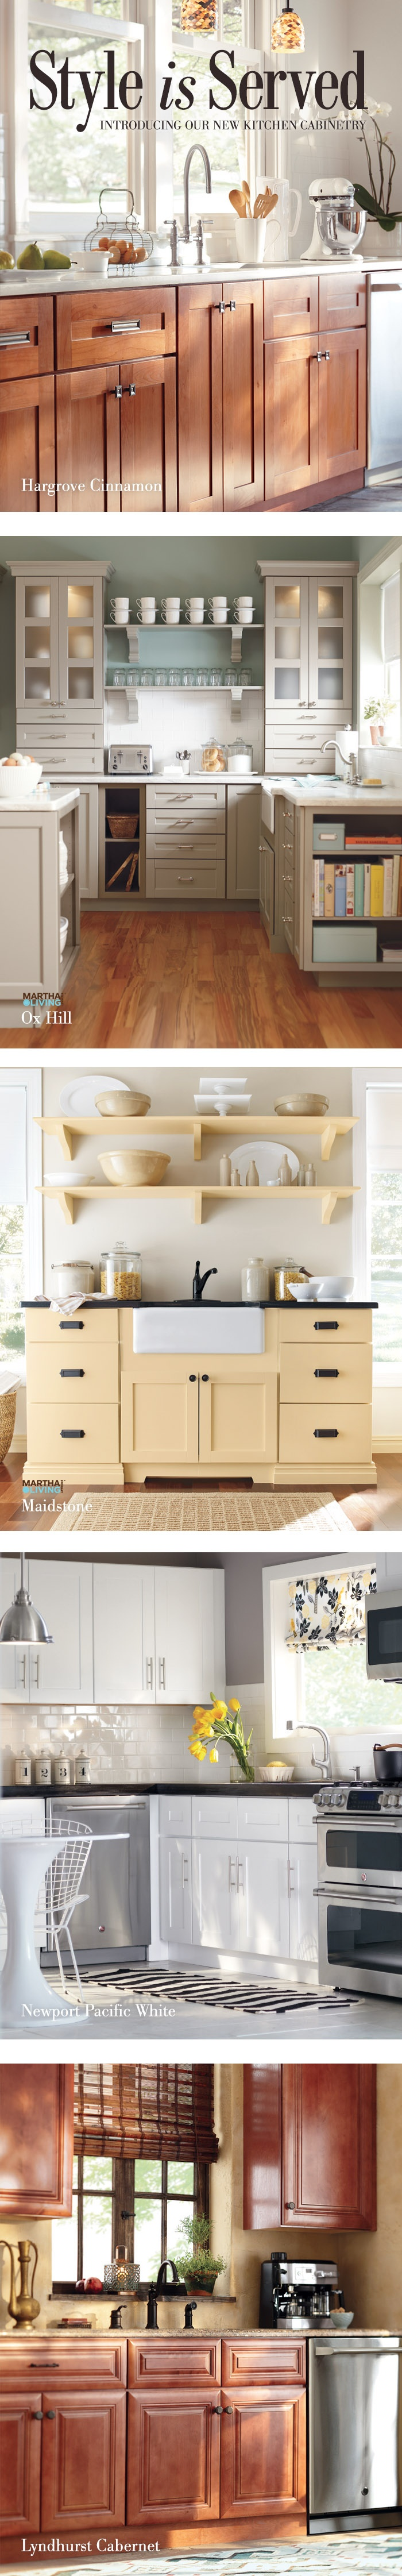 kitchen cabinets home depot for the home kitchen pinterest